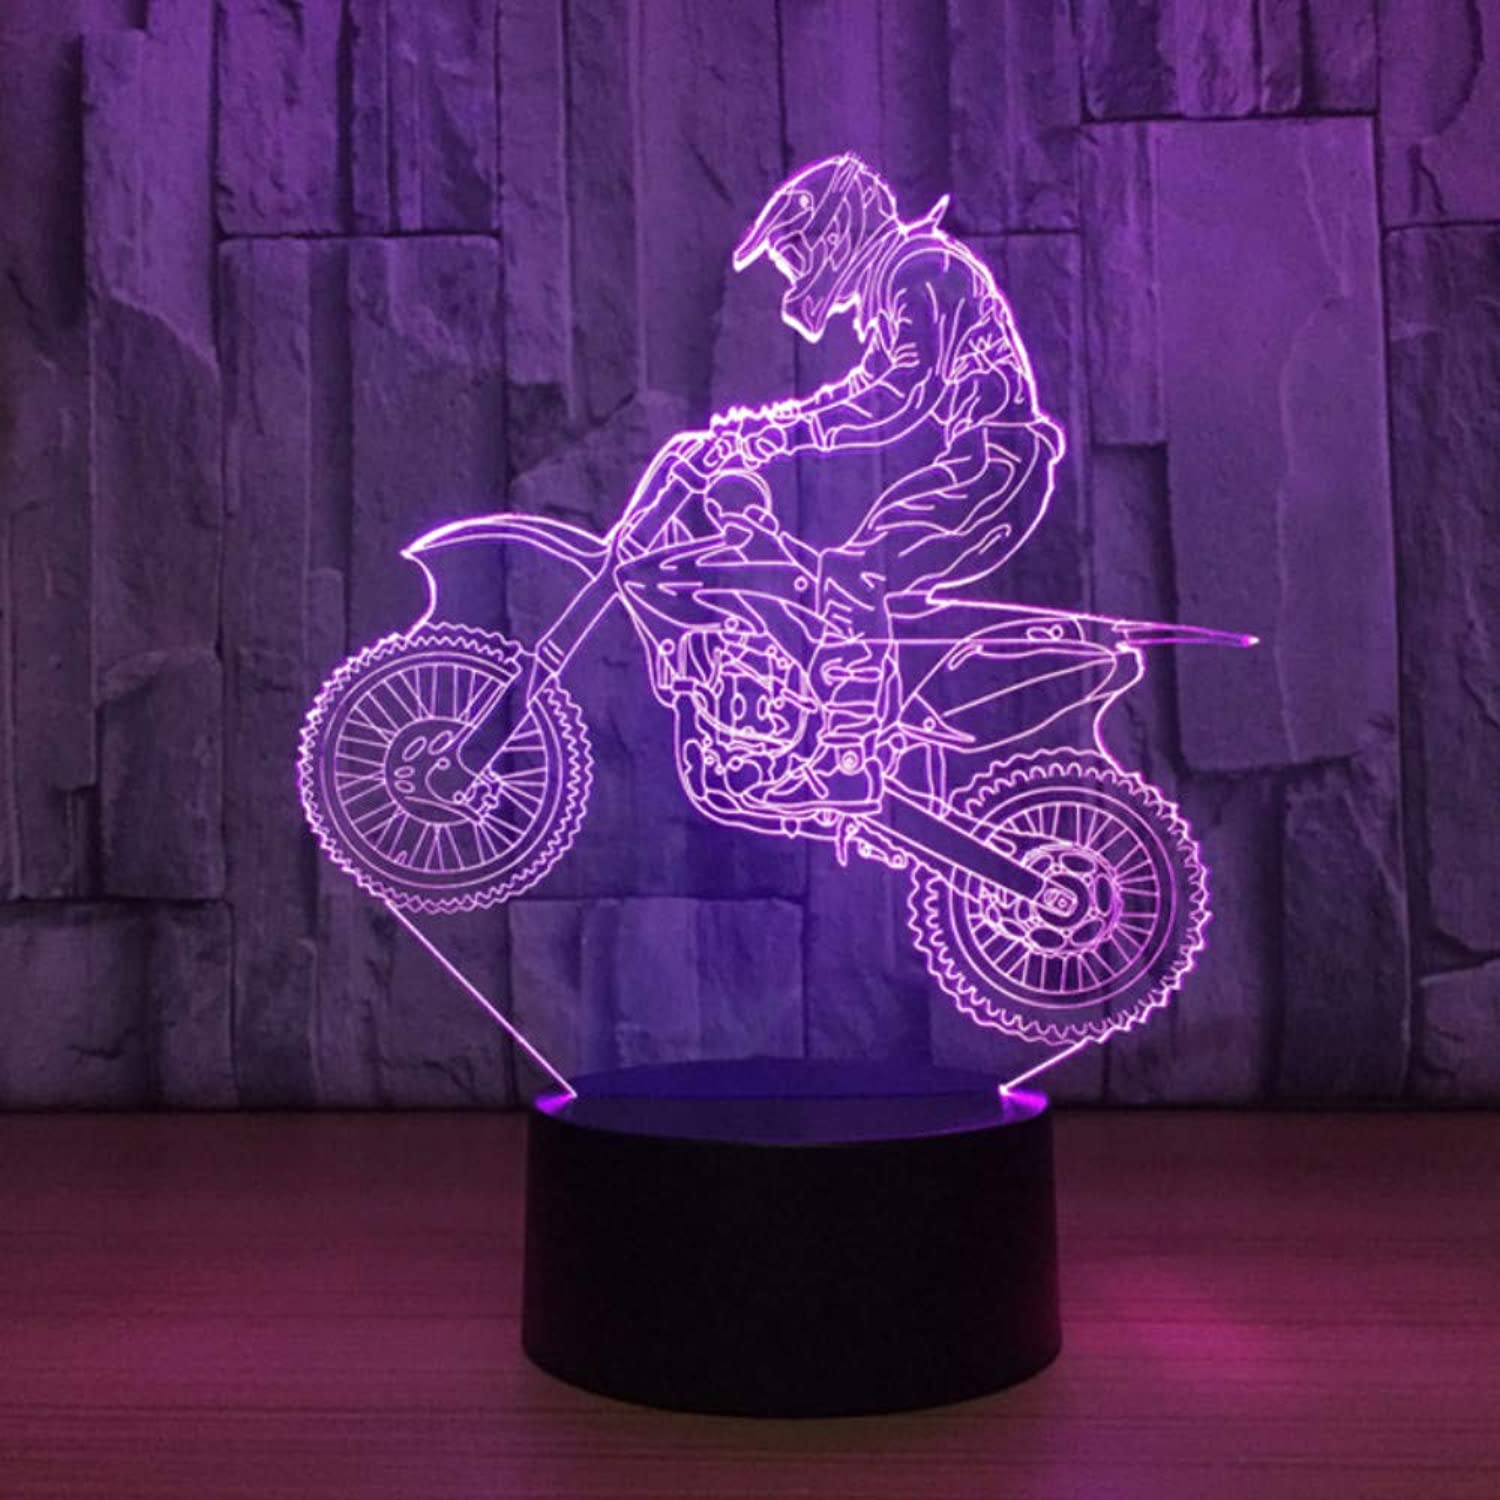 Zonxn Bedroom Decor Sleep USB Led Kids Touch Motorcycle 3D Table Lamp Cross Country Motorbike Modelling Night Lights Lighting Fixture